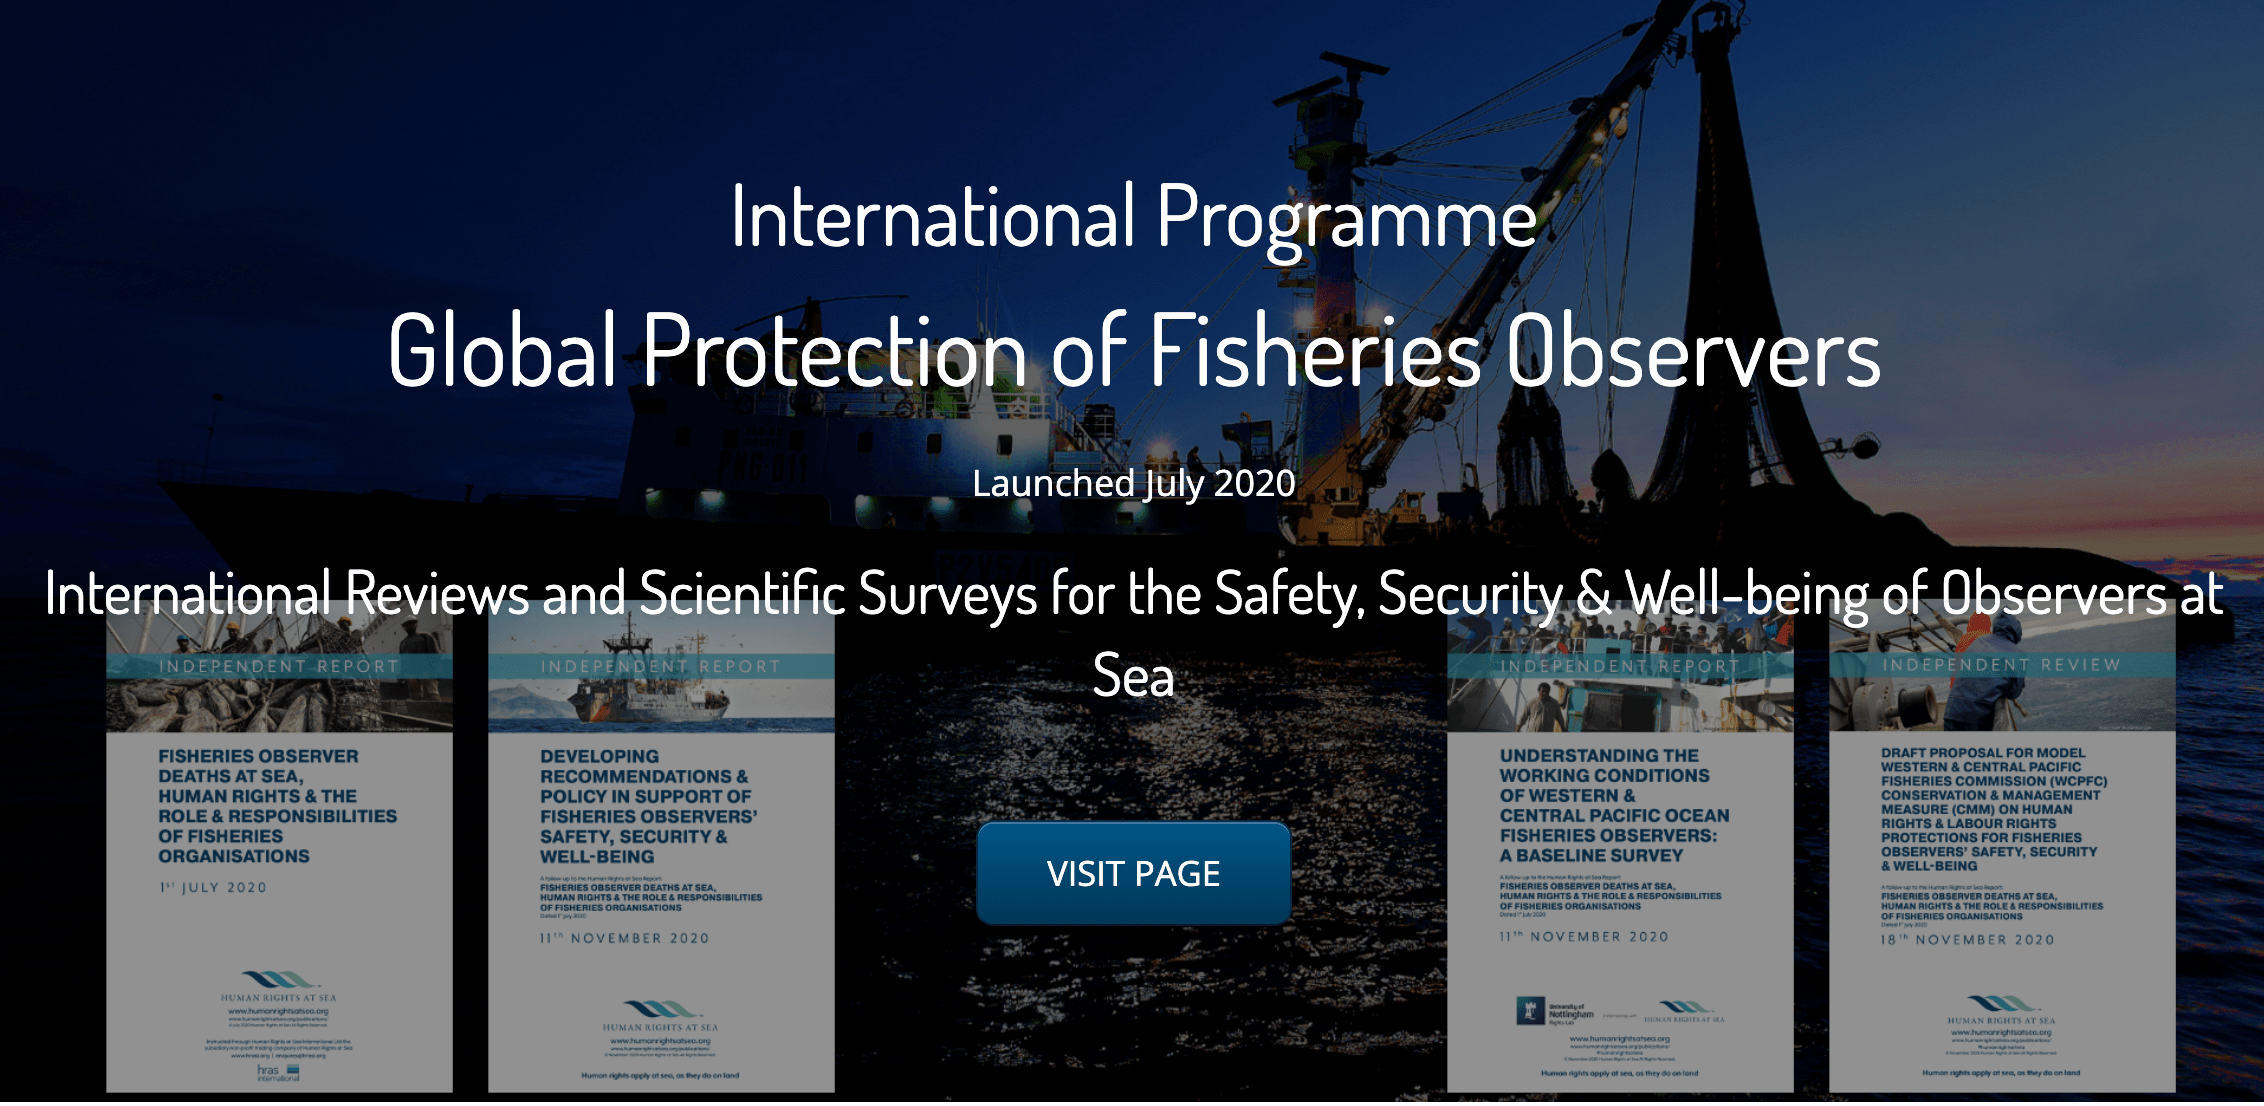 Global Protection of Fisheries Observers